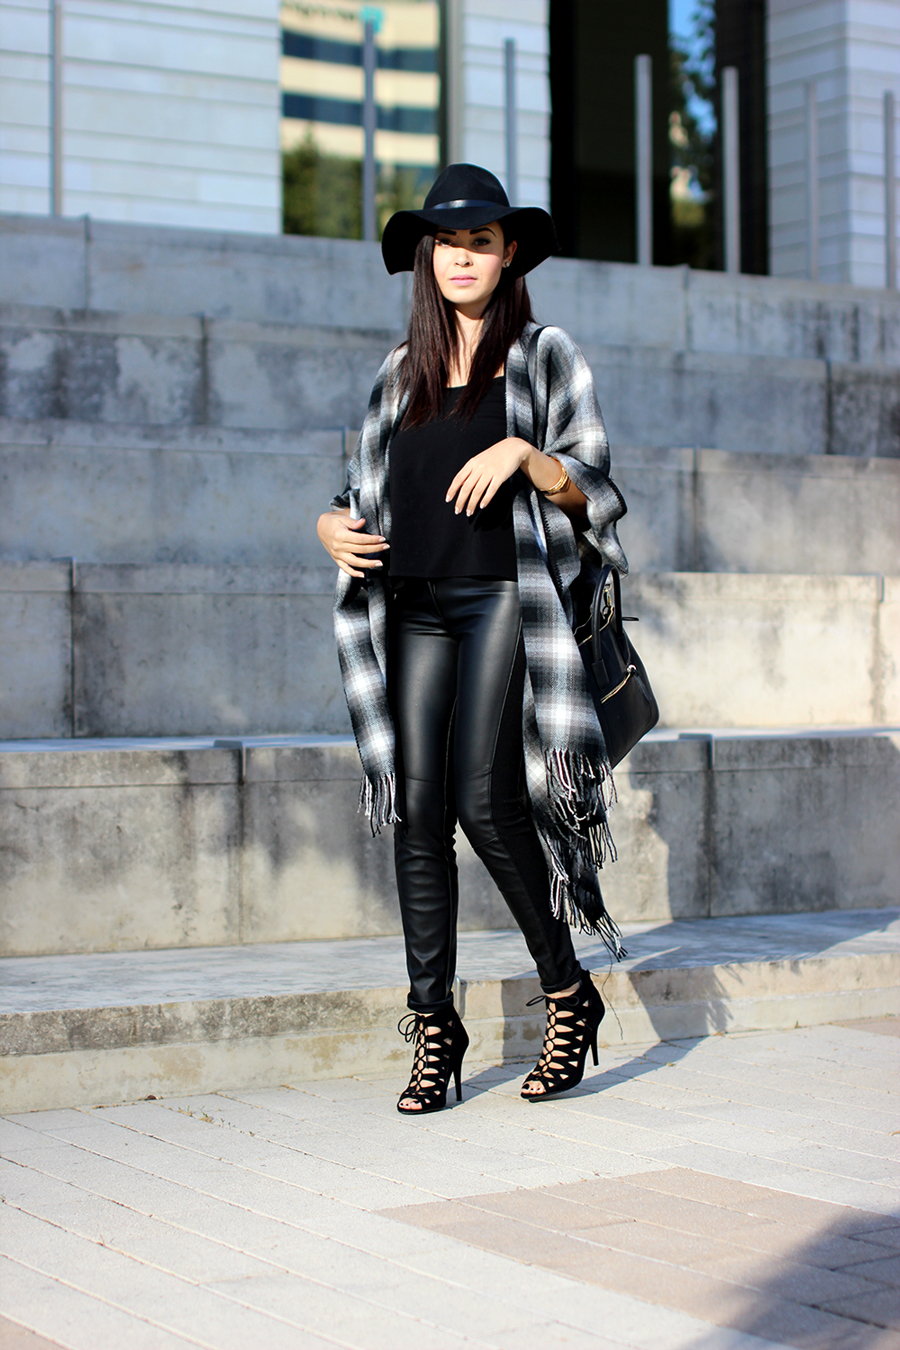 FIXIN-TO-THRILL-OVERSIZED-SCARF-CHECK-LEATHER-BLACK-NOVEMBER-ATX-AUSTIN-STYLE-BLOG-FW15-TRENDY-CHIC-GLAM-TEXAS-5